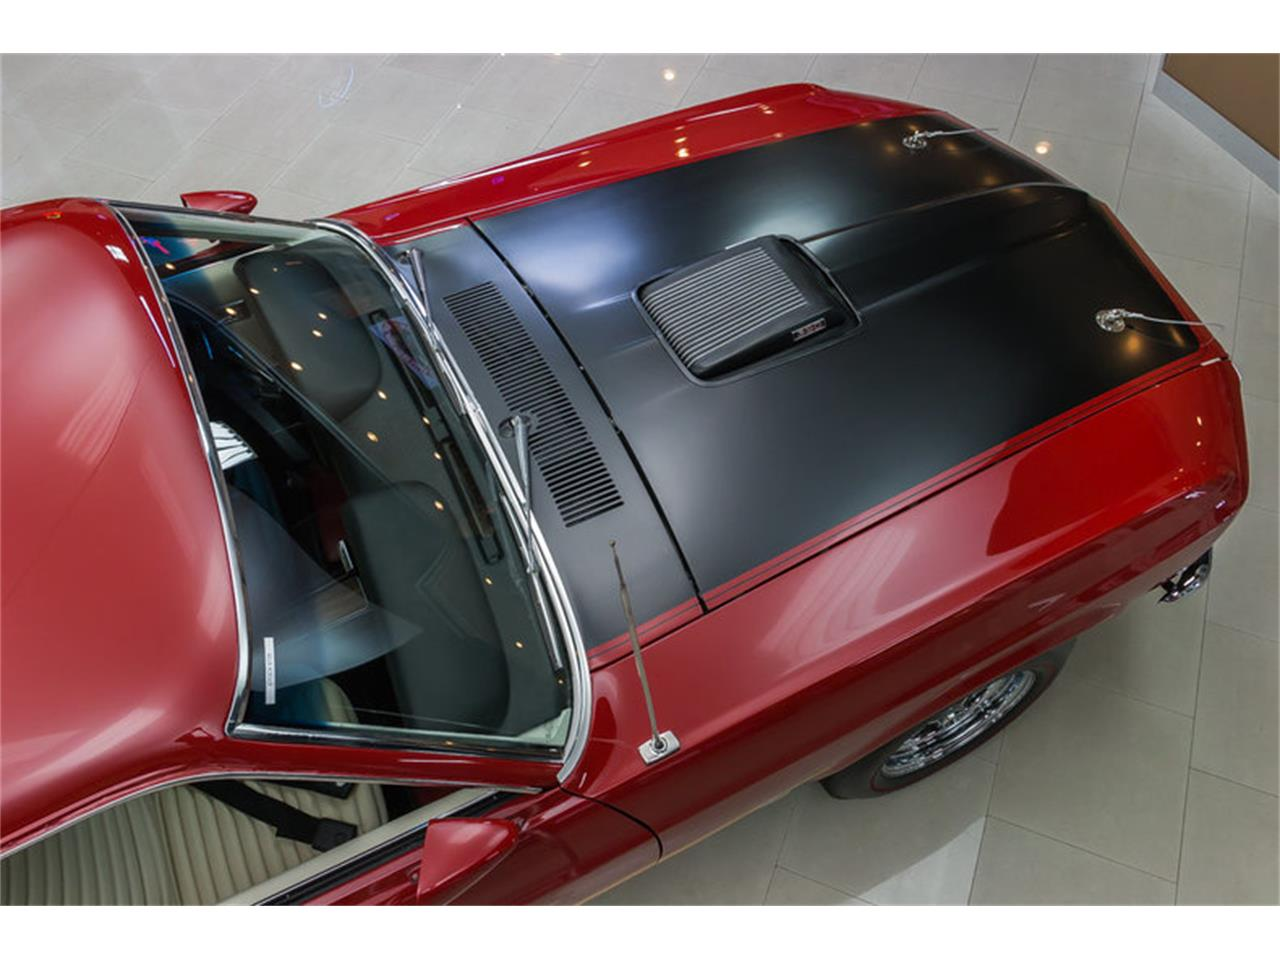 Large Picture of Classic '69 Mustang Mach 1 S Code located in Michigan - IS3G